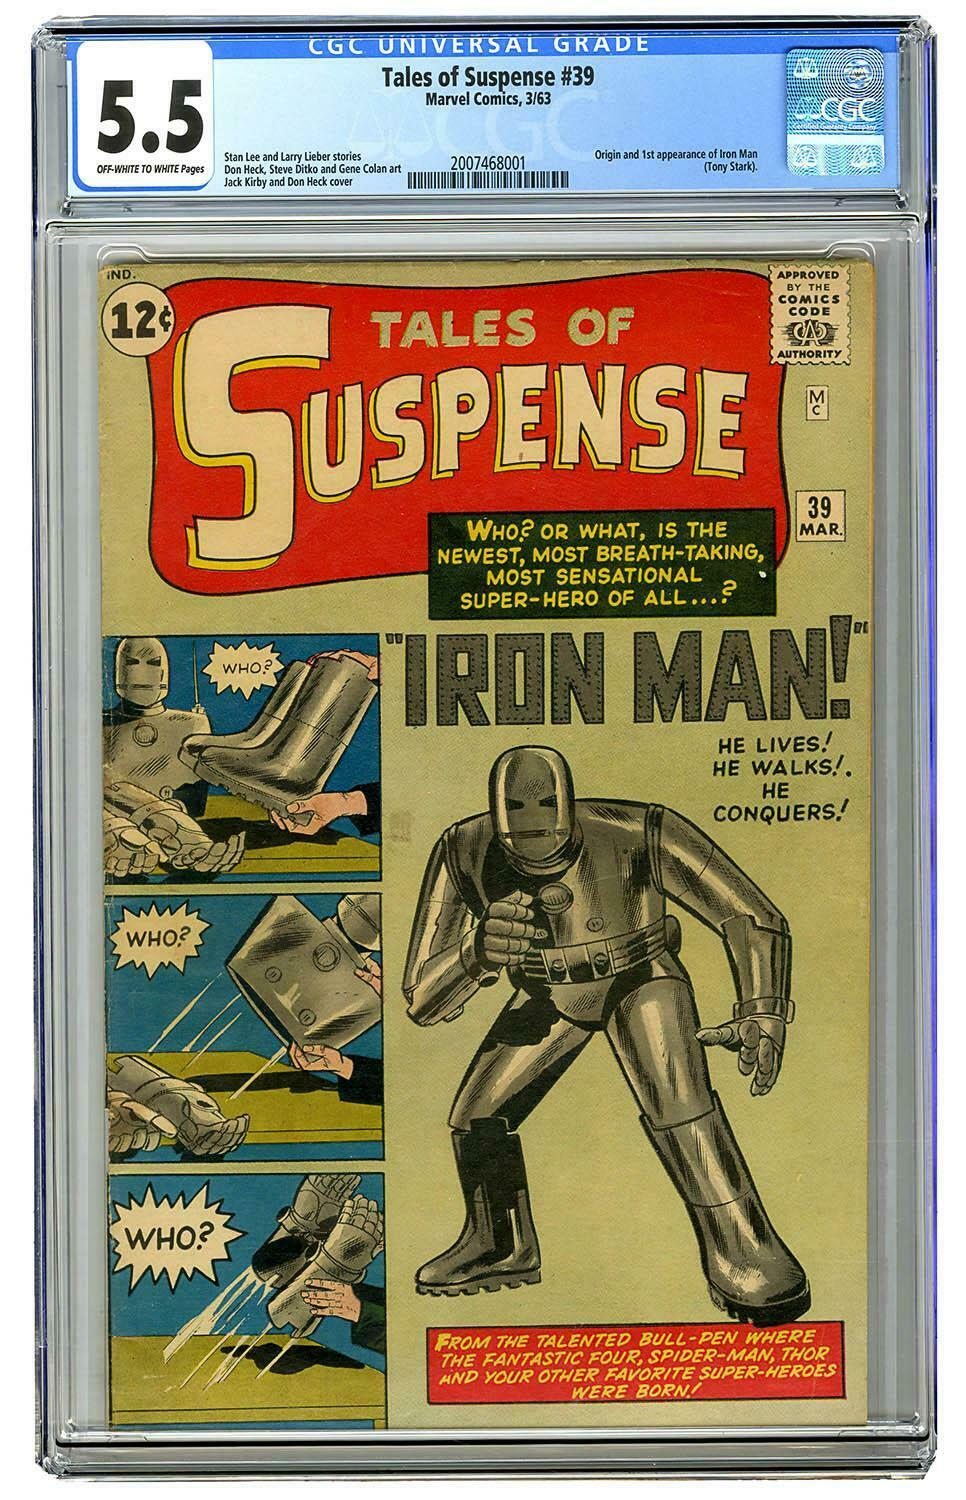 Tales of Suspense #39 1st Iron Man Avengers Endgame CGC 5.5 Marvel Comic